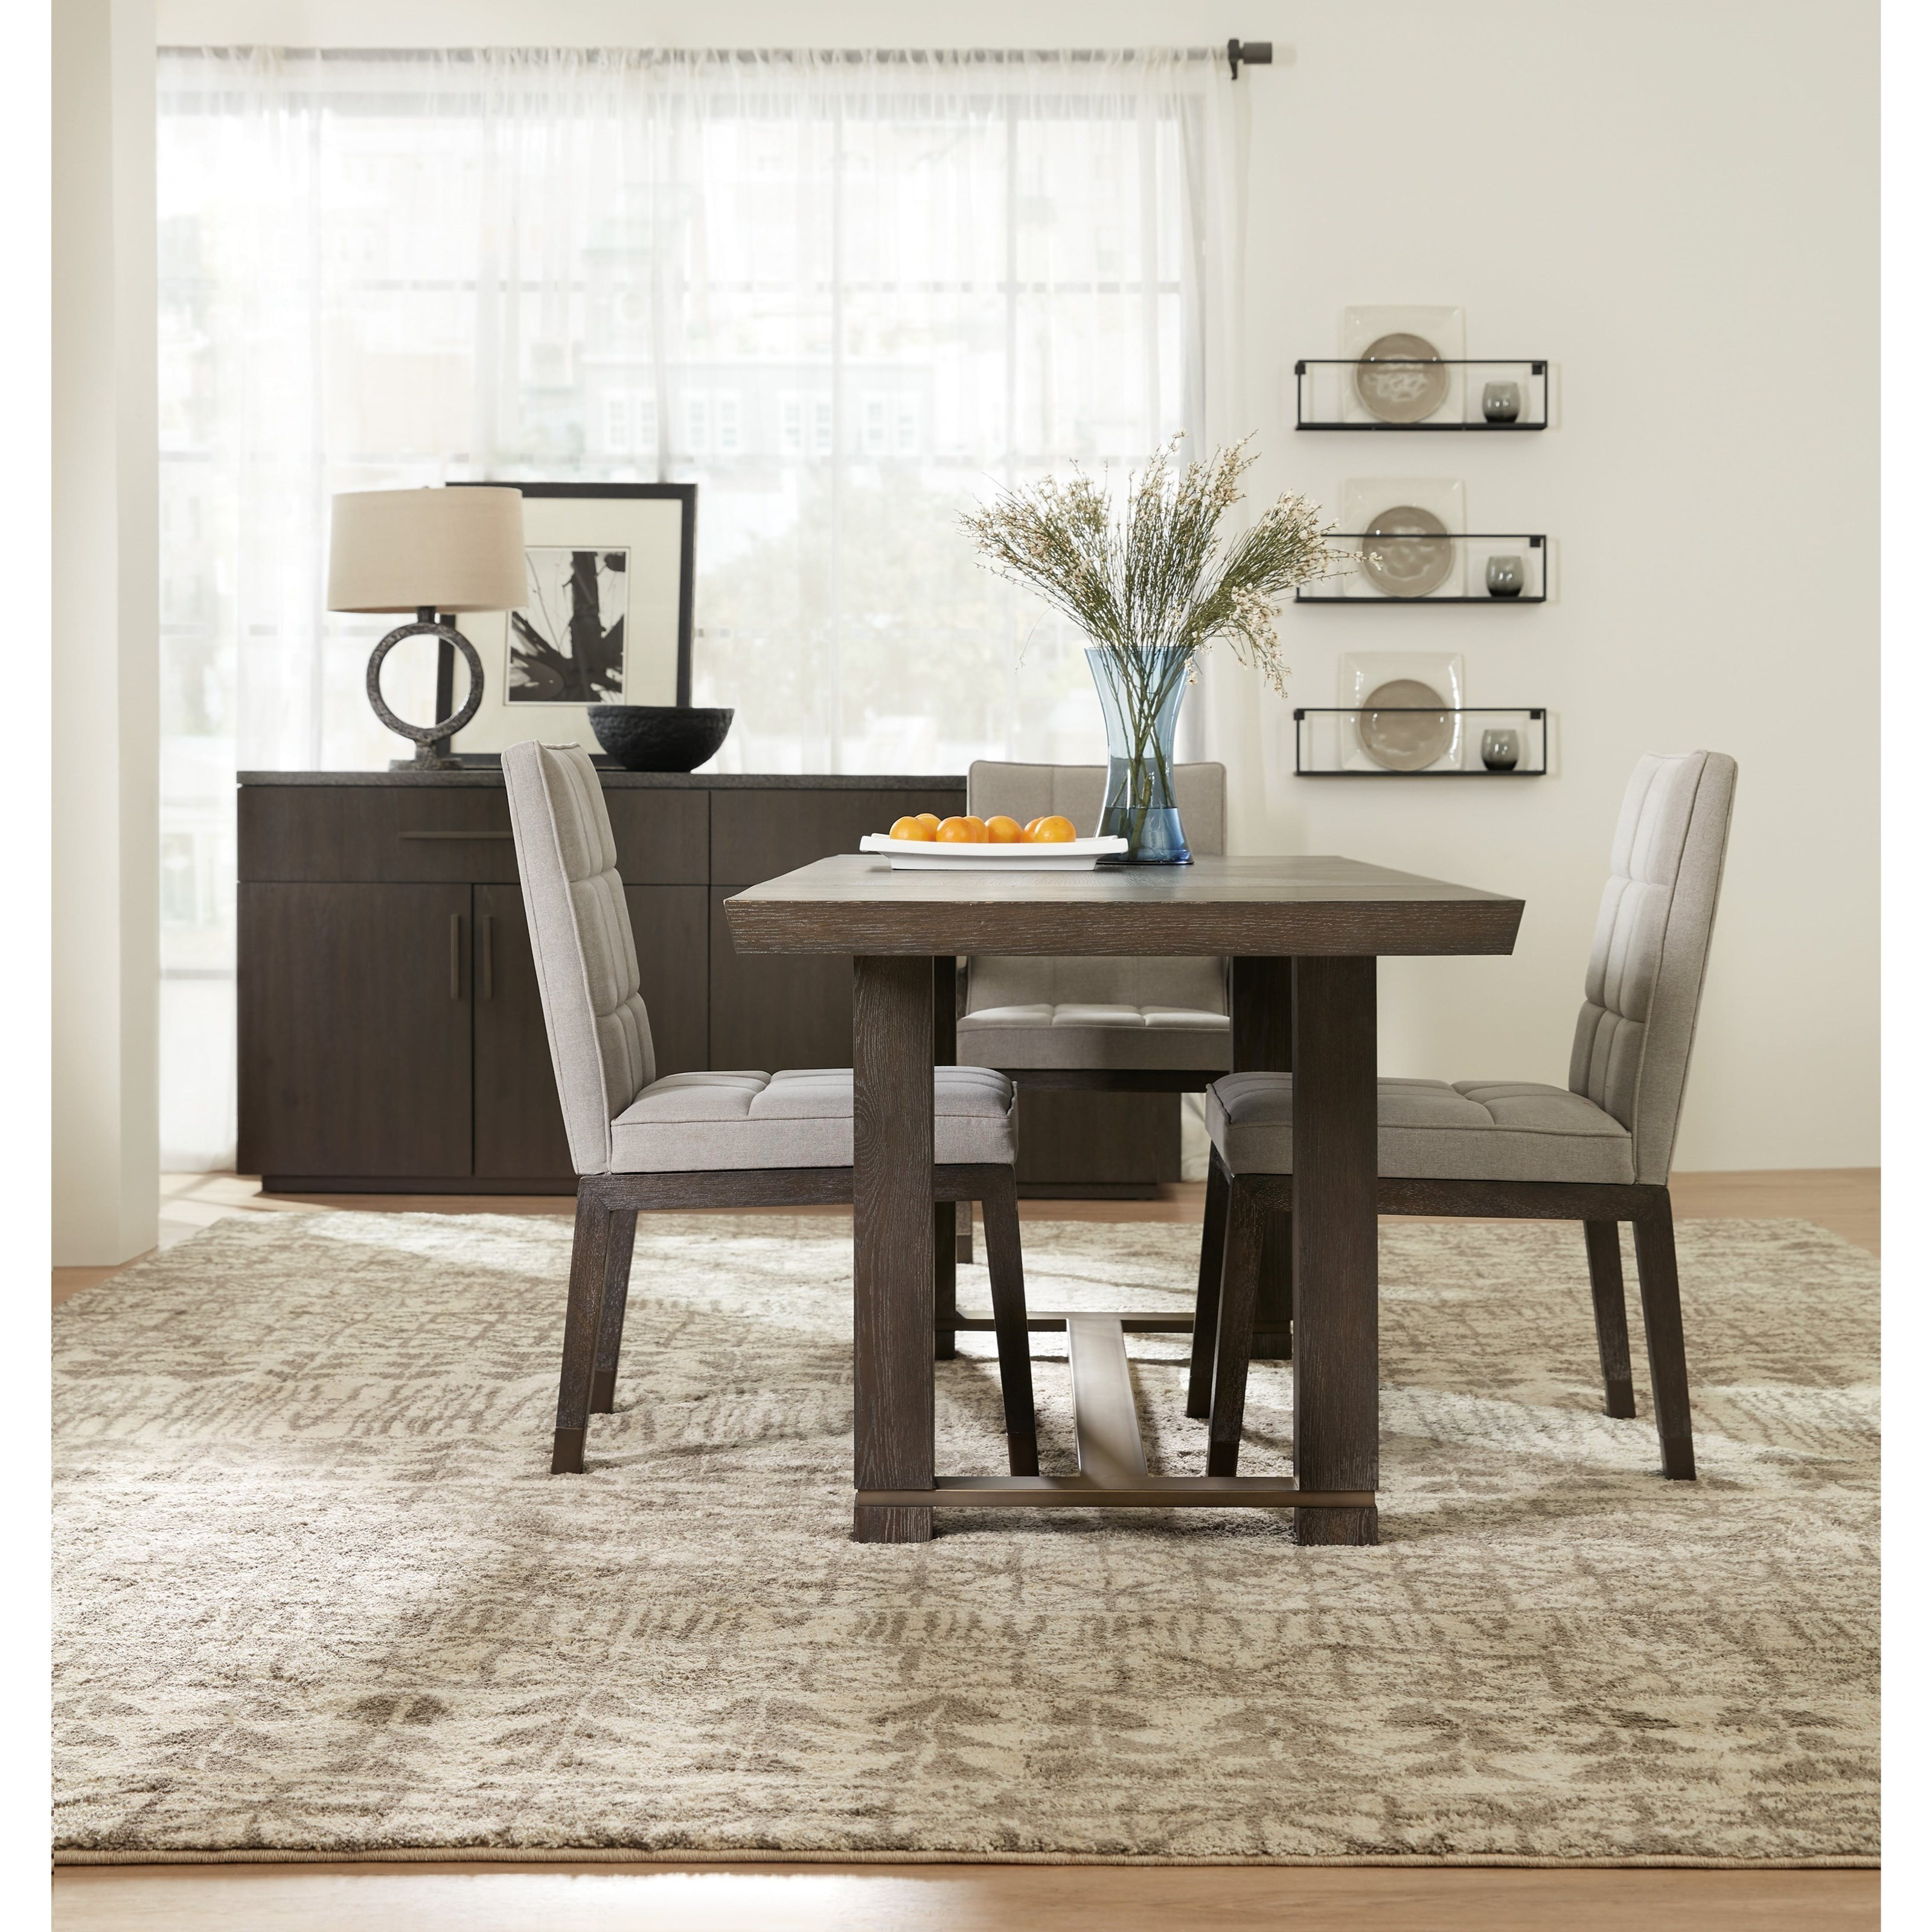 Attirant Hooker Furniture Miramar Aventura Casual Dining Room Group